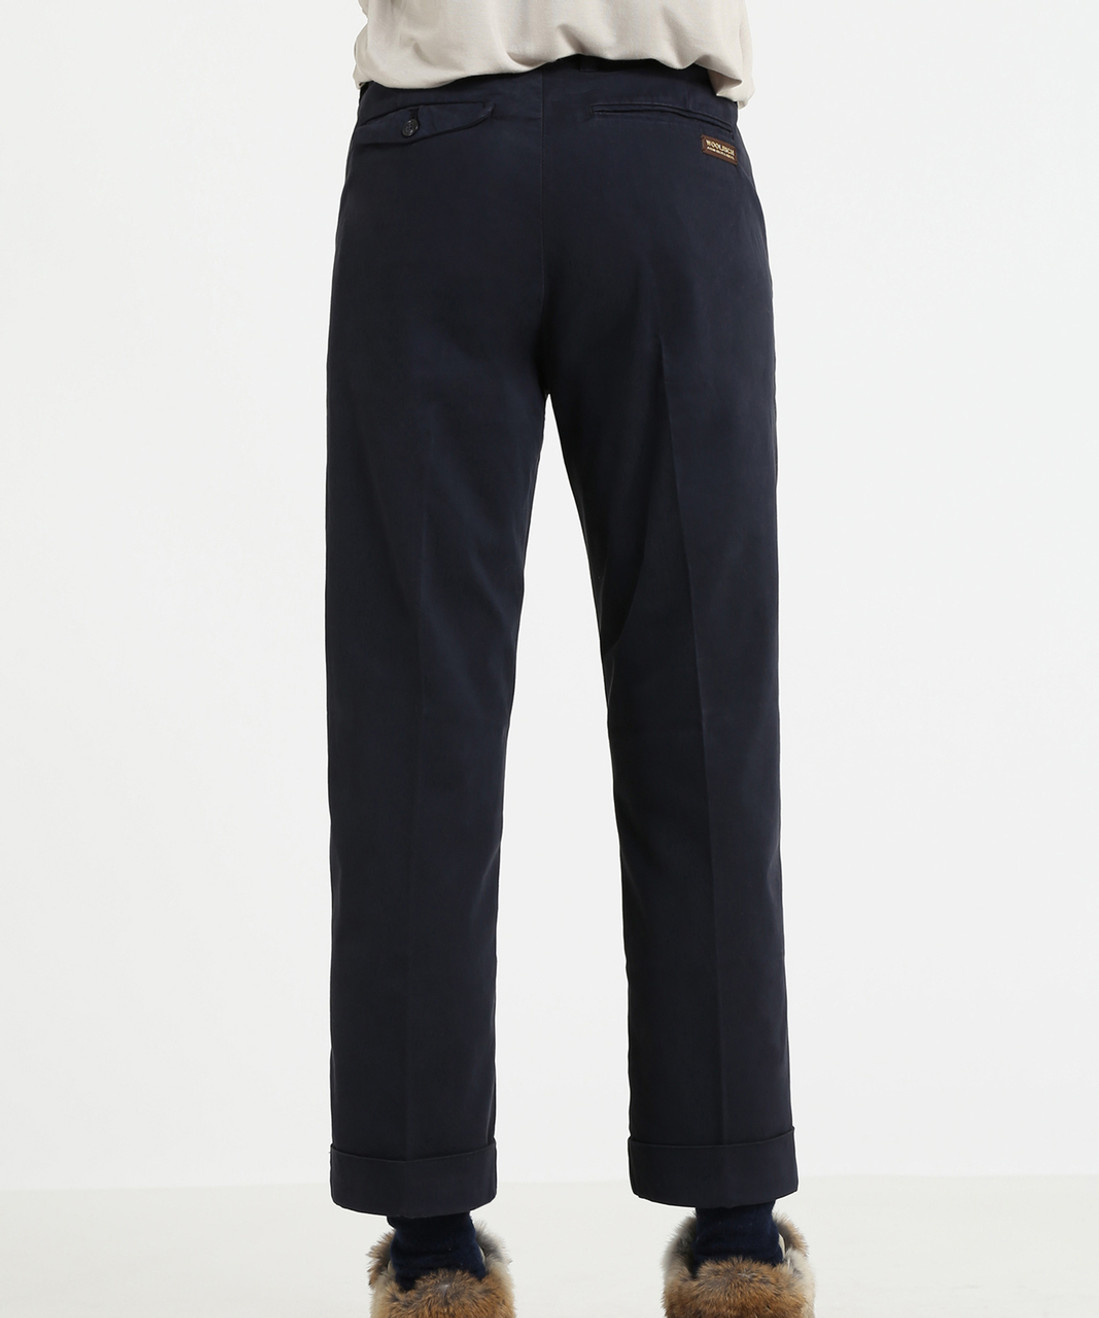 Women's American Chino Pants- John Rich & Bros. (Boyfriend Fit)